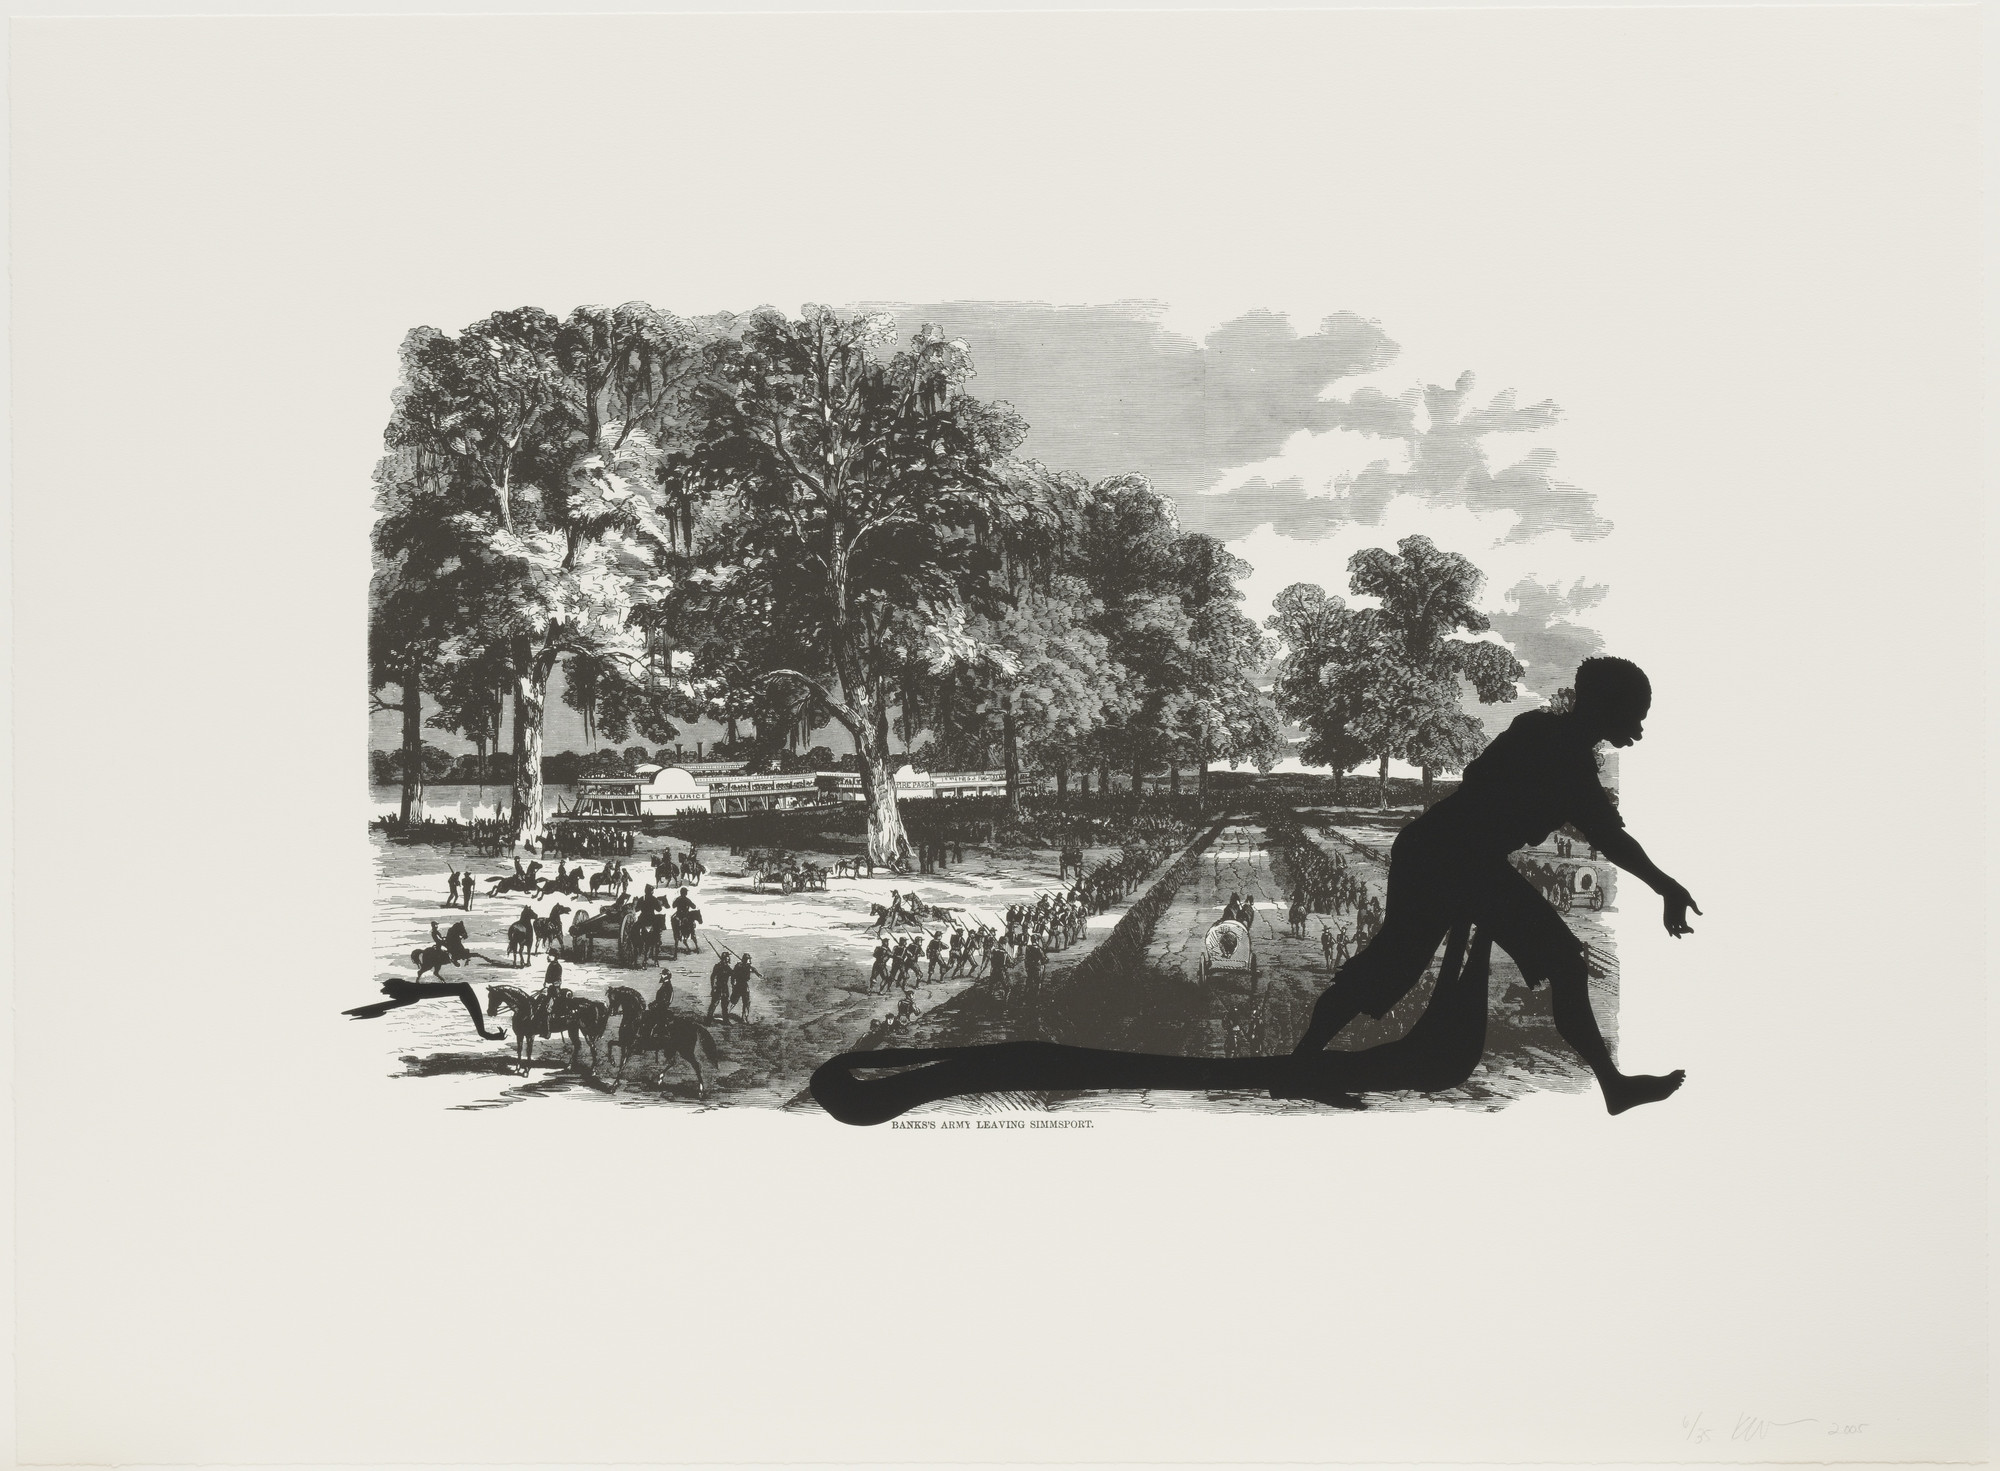 Kara Walker. Banks's Army Leaving Simmsport from Harper's Pictorial History of the Civil War (Annotated). 2005